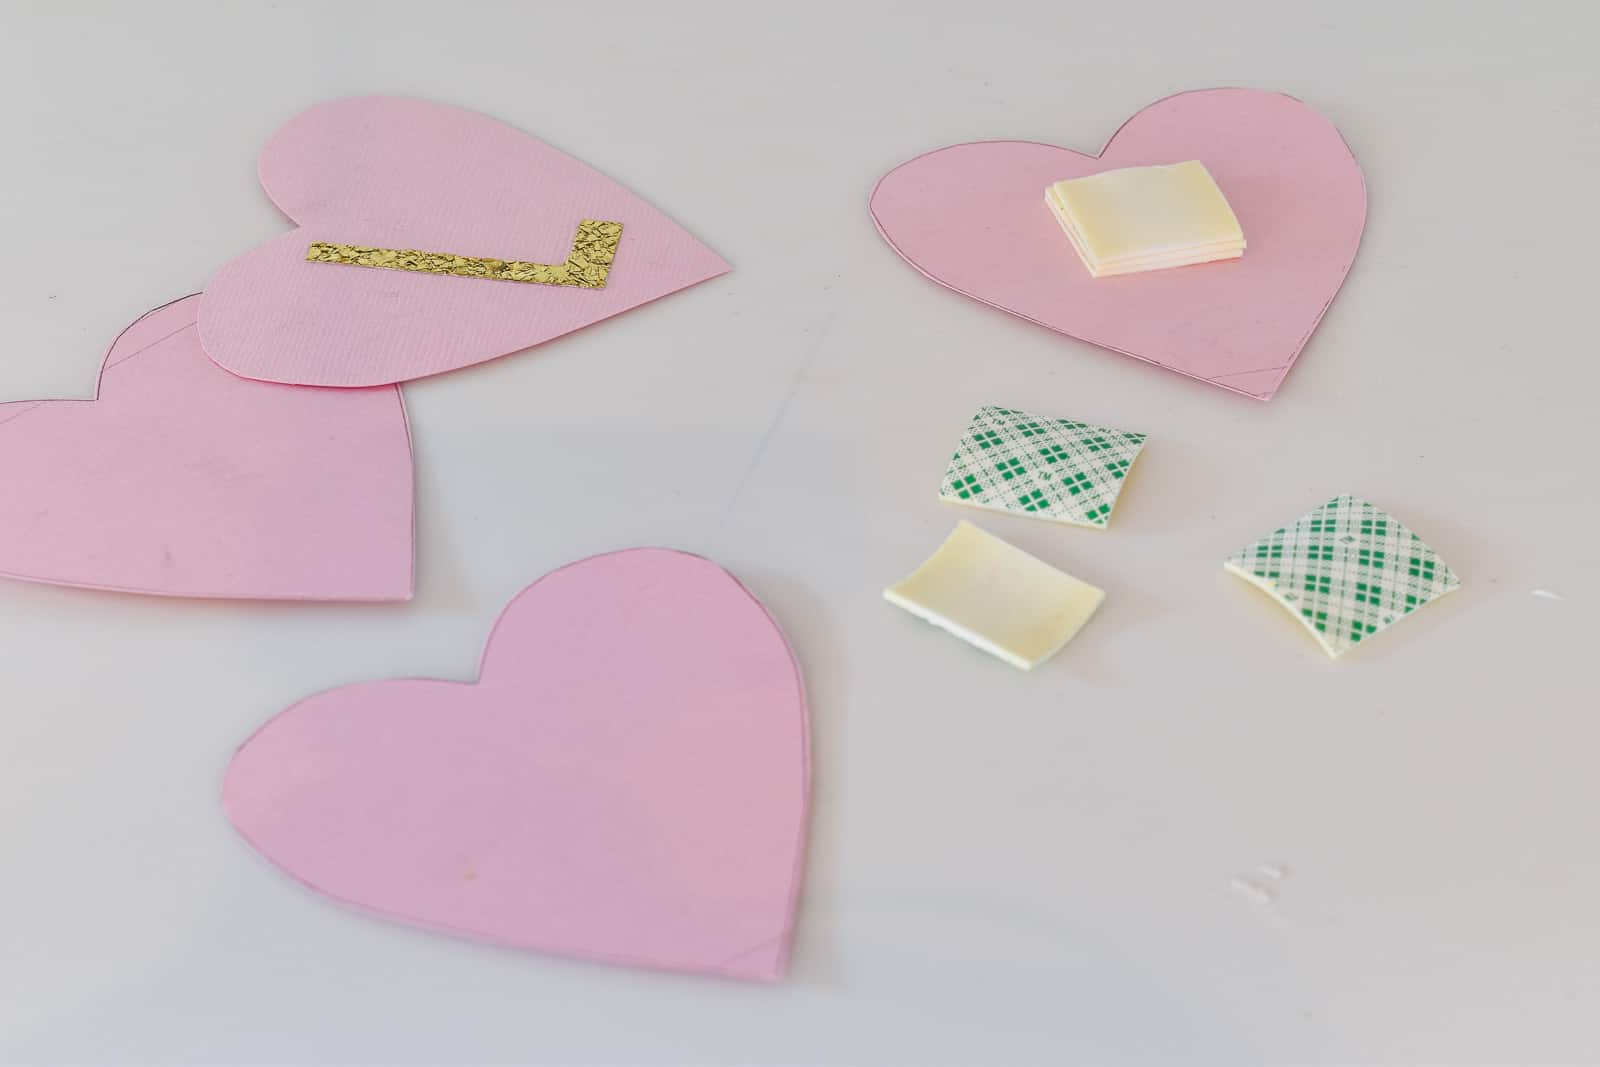 Add tape to the back of the hearts